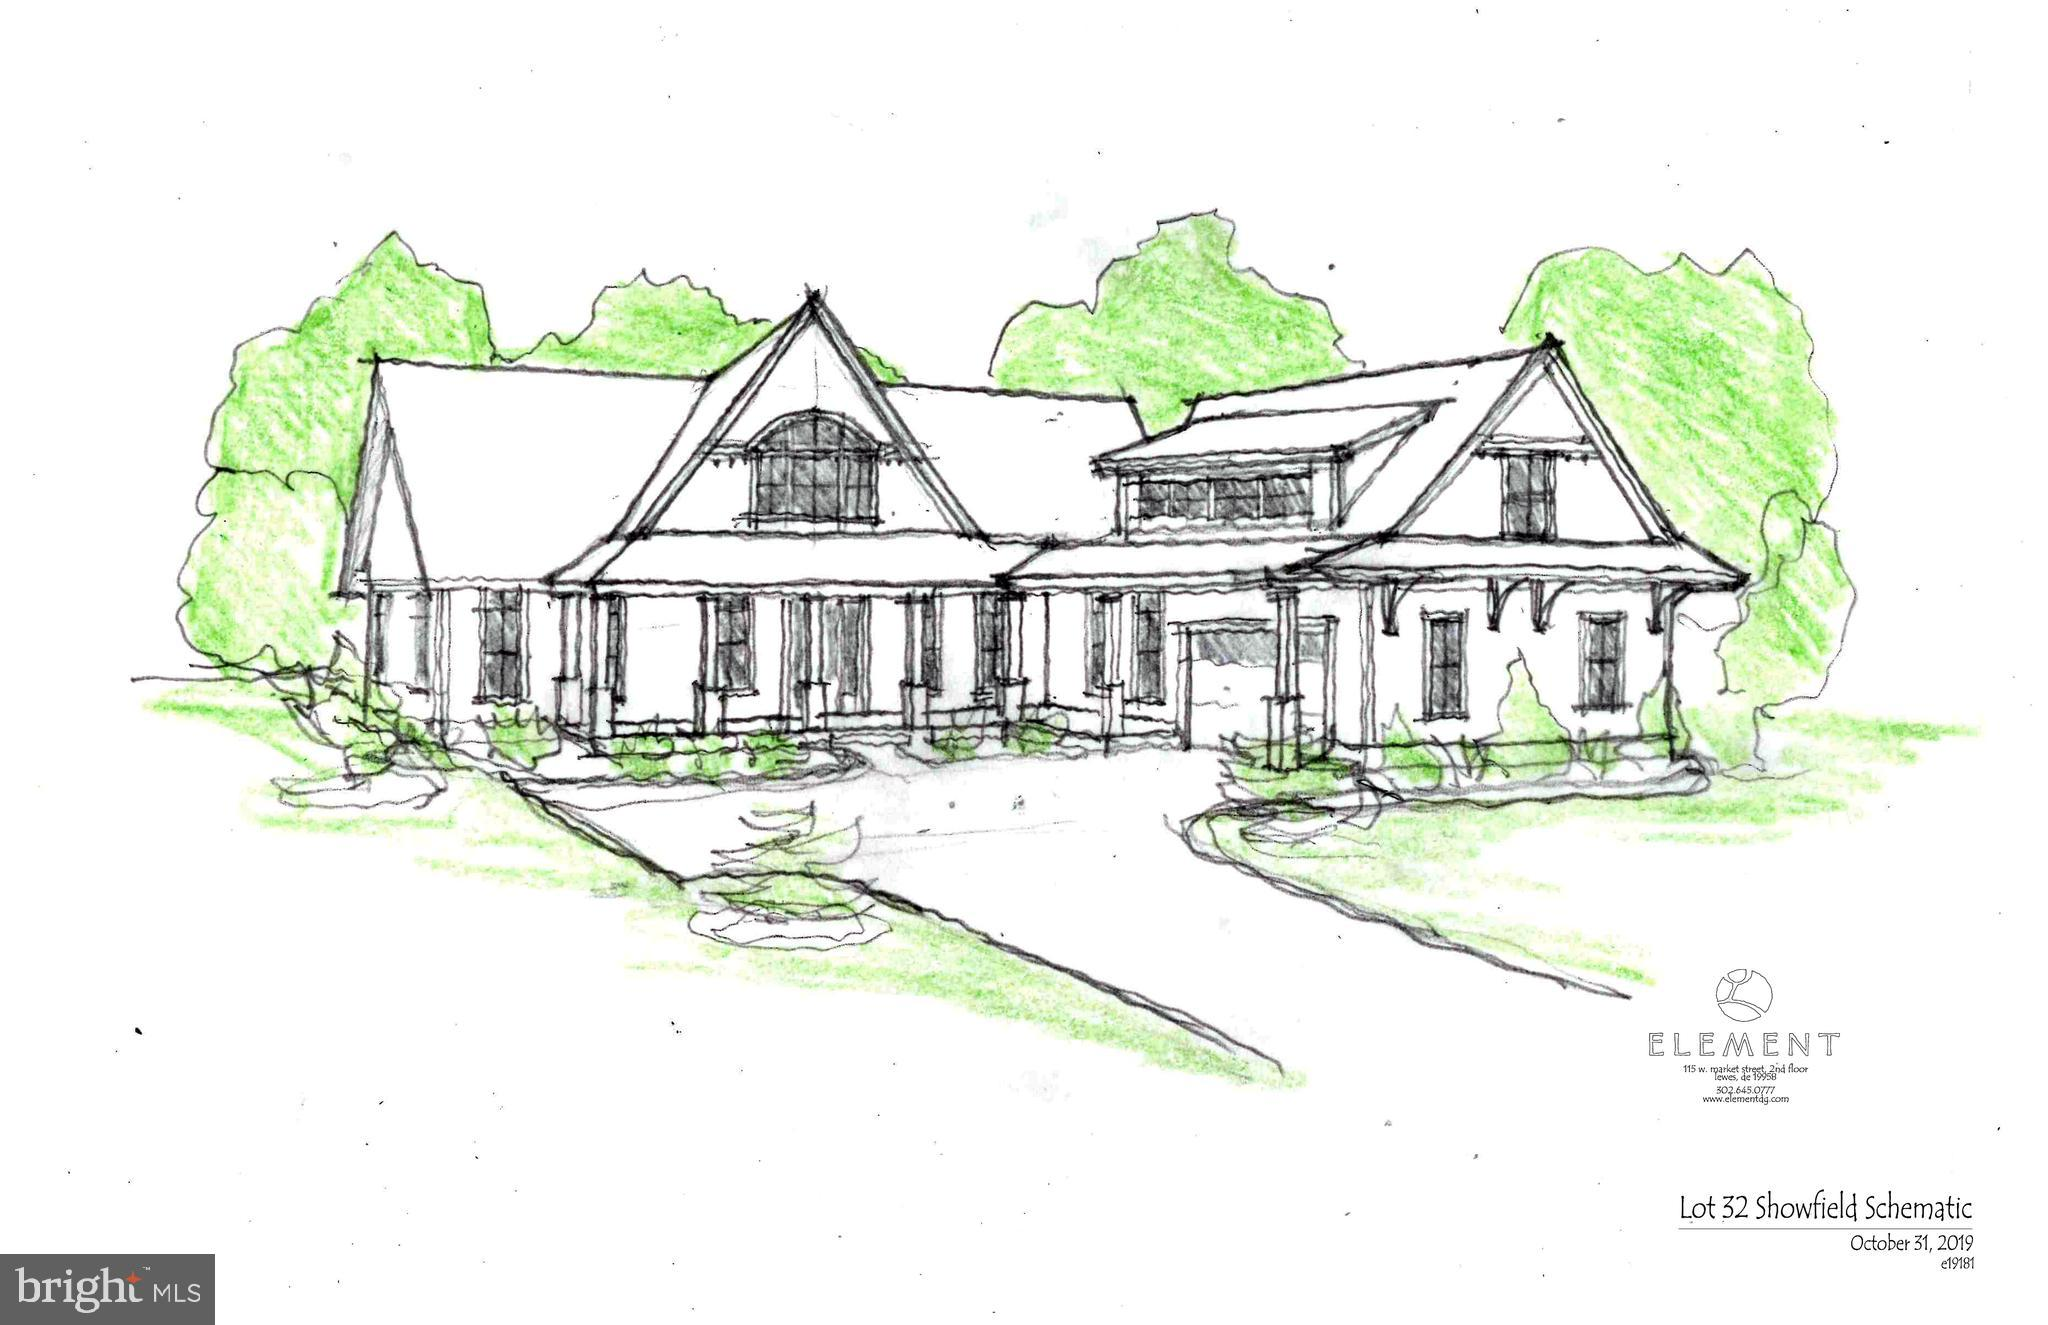 This lot-home package on a premium White's Pond lot is now available in Showfield! This custom home has been designed specifically for Lot 32 by Element Design Group. The first floor features a master suite, study, mud/laundry room, and open floor plan. The second floor offers three additional bedrooms, each with its own full bathroom. Other features include a large deck, front porch, screened porch, and two-car garage. This home is located in the iconic 132-acre community of Showfield, which is situated along a portion of the 16-mile Junction & Breakwater Trail loop. Amenities include a community clubhouse, community pool, wooded walking trails, and four additional ponds. Showfield is located within a half mile of Lewes Beach, Cape Henlopen State Park, and downtown restaurants and shopping opportunities. Showfield is the most exciting opportunity at the Delaware Beaches and has become a premier neighborhood in Lewes.